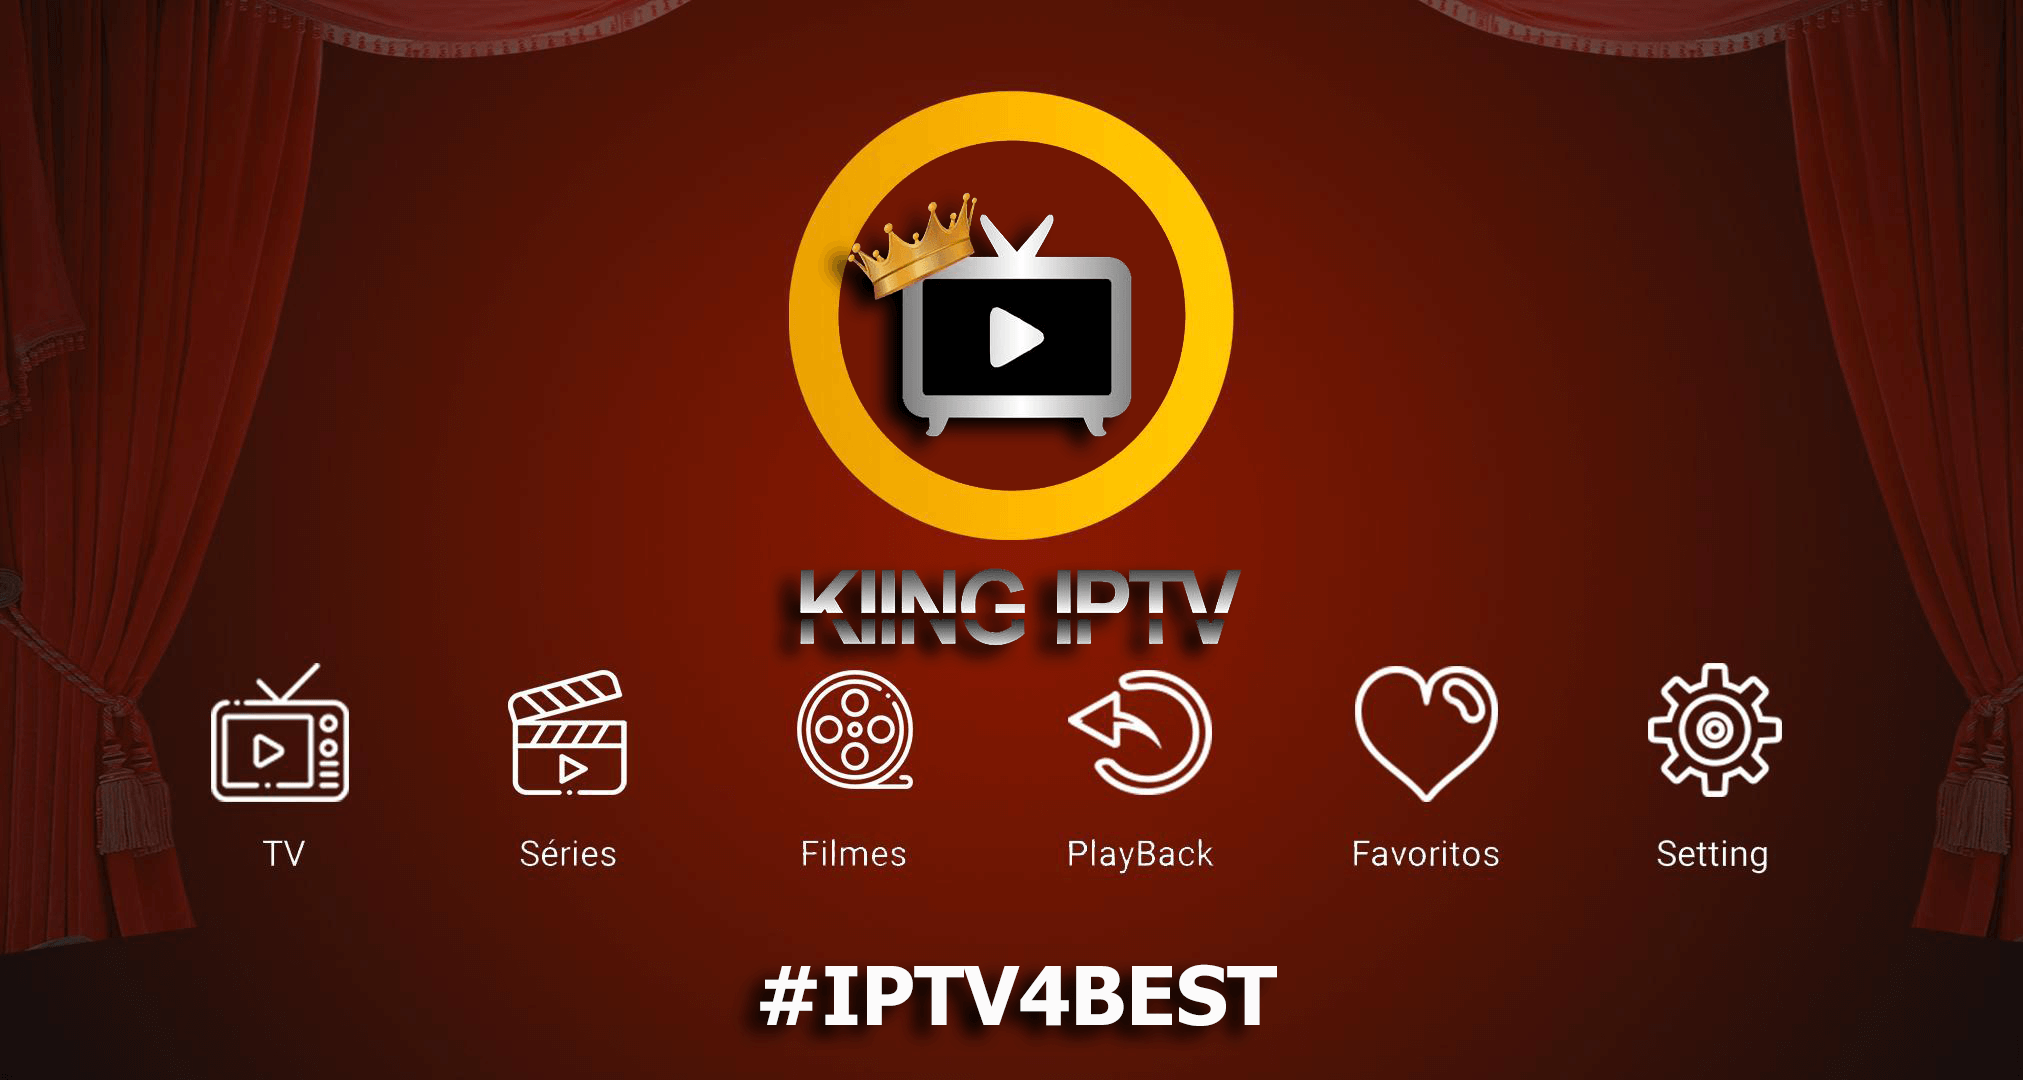 King IPTV Plus By IPTV4BEST